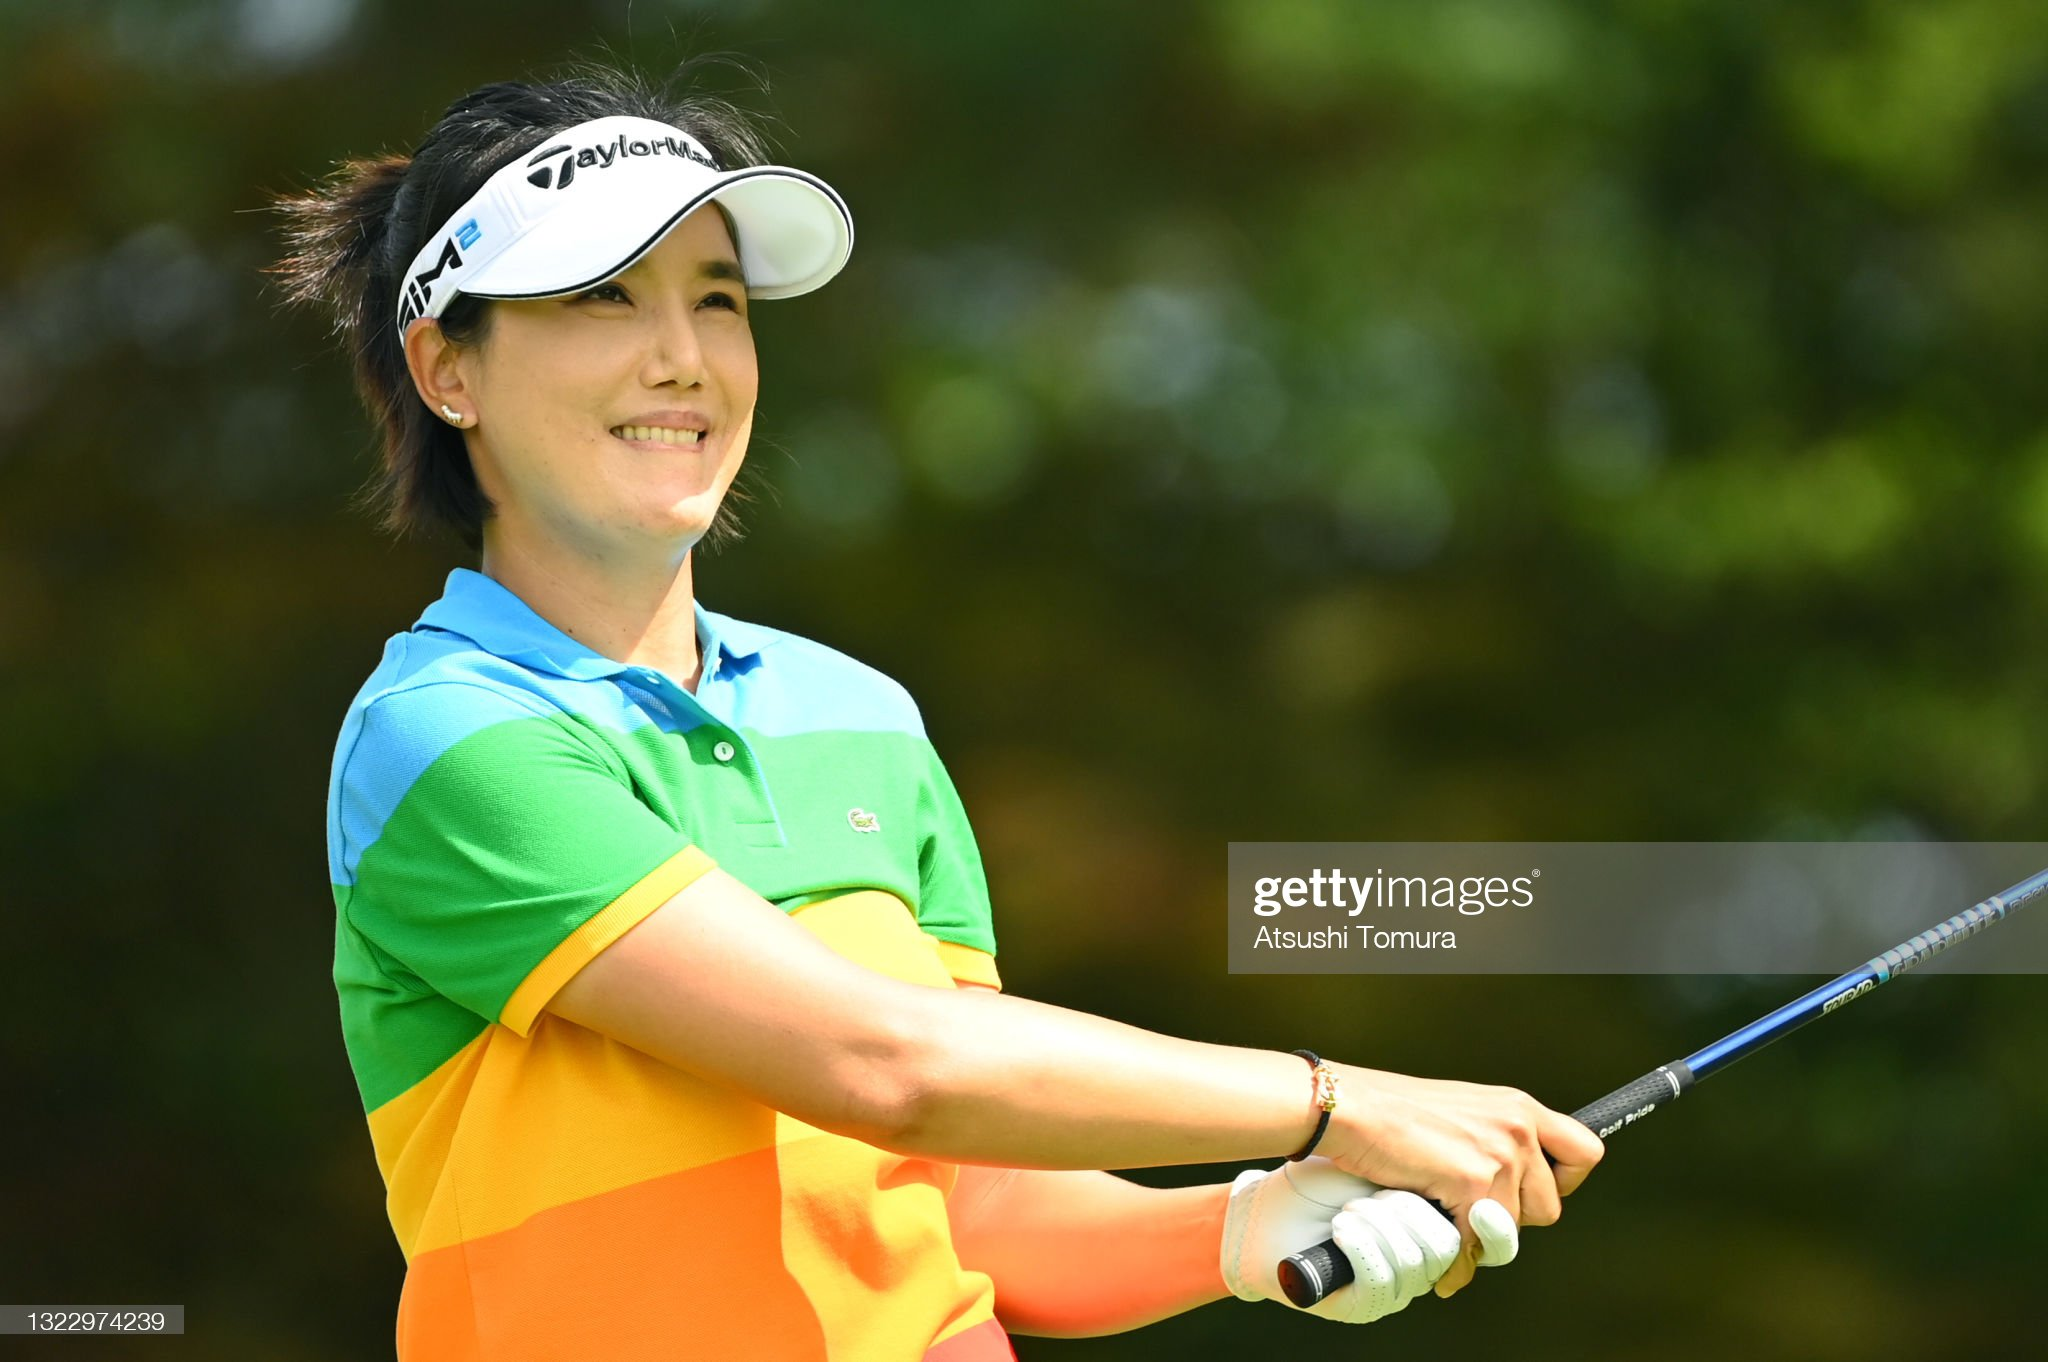 https://media.gettyimages.com/photos/mijeong-jeon-of-south-korea-hits-her-tee-shot-on-the-5th-hole-during-picture-id1322974239?s=2048x2048